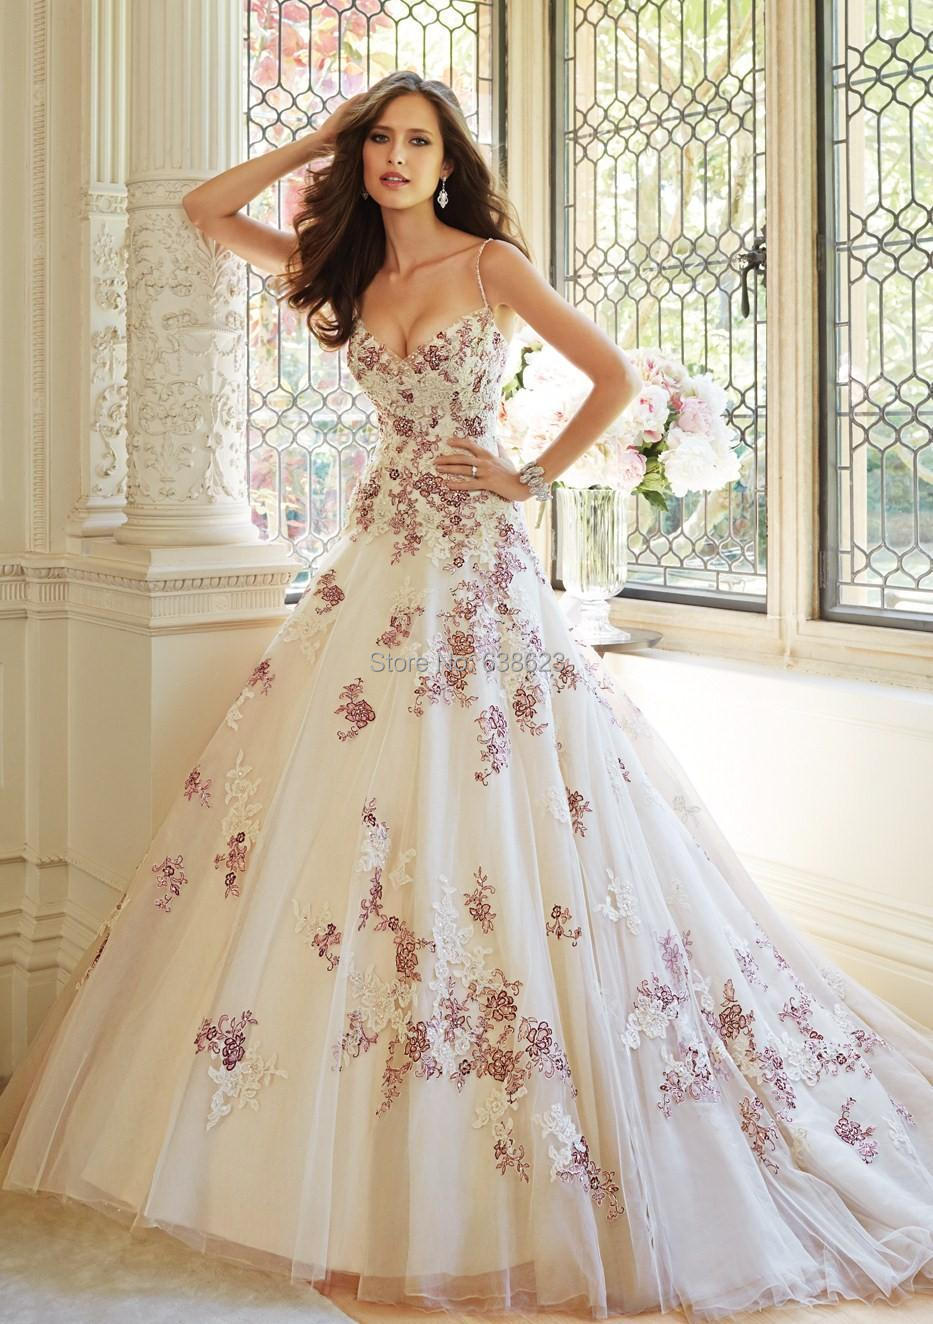 Wedding Dresses Wholesale : Wholesale bridal gown colors from china wholesalers